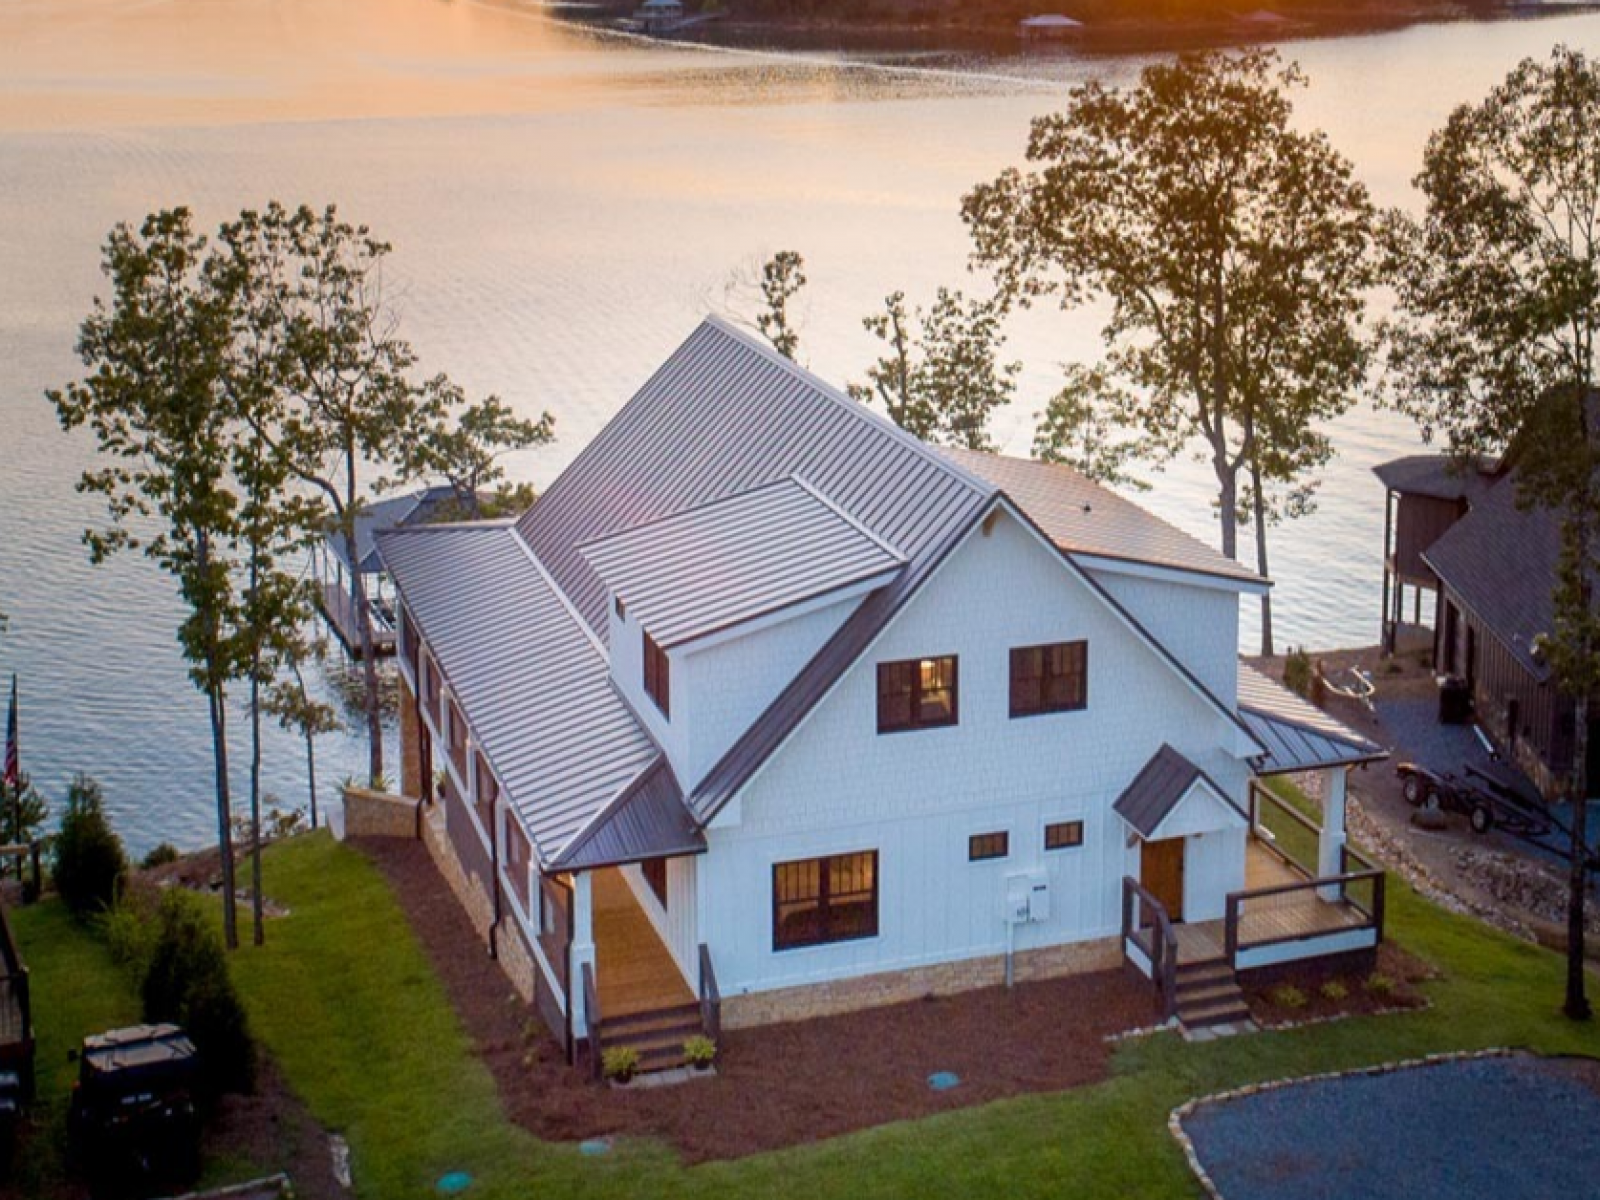 20 Best Beach House Plans for That Perfect Waterfront Lifestyle